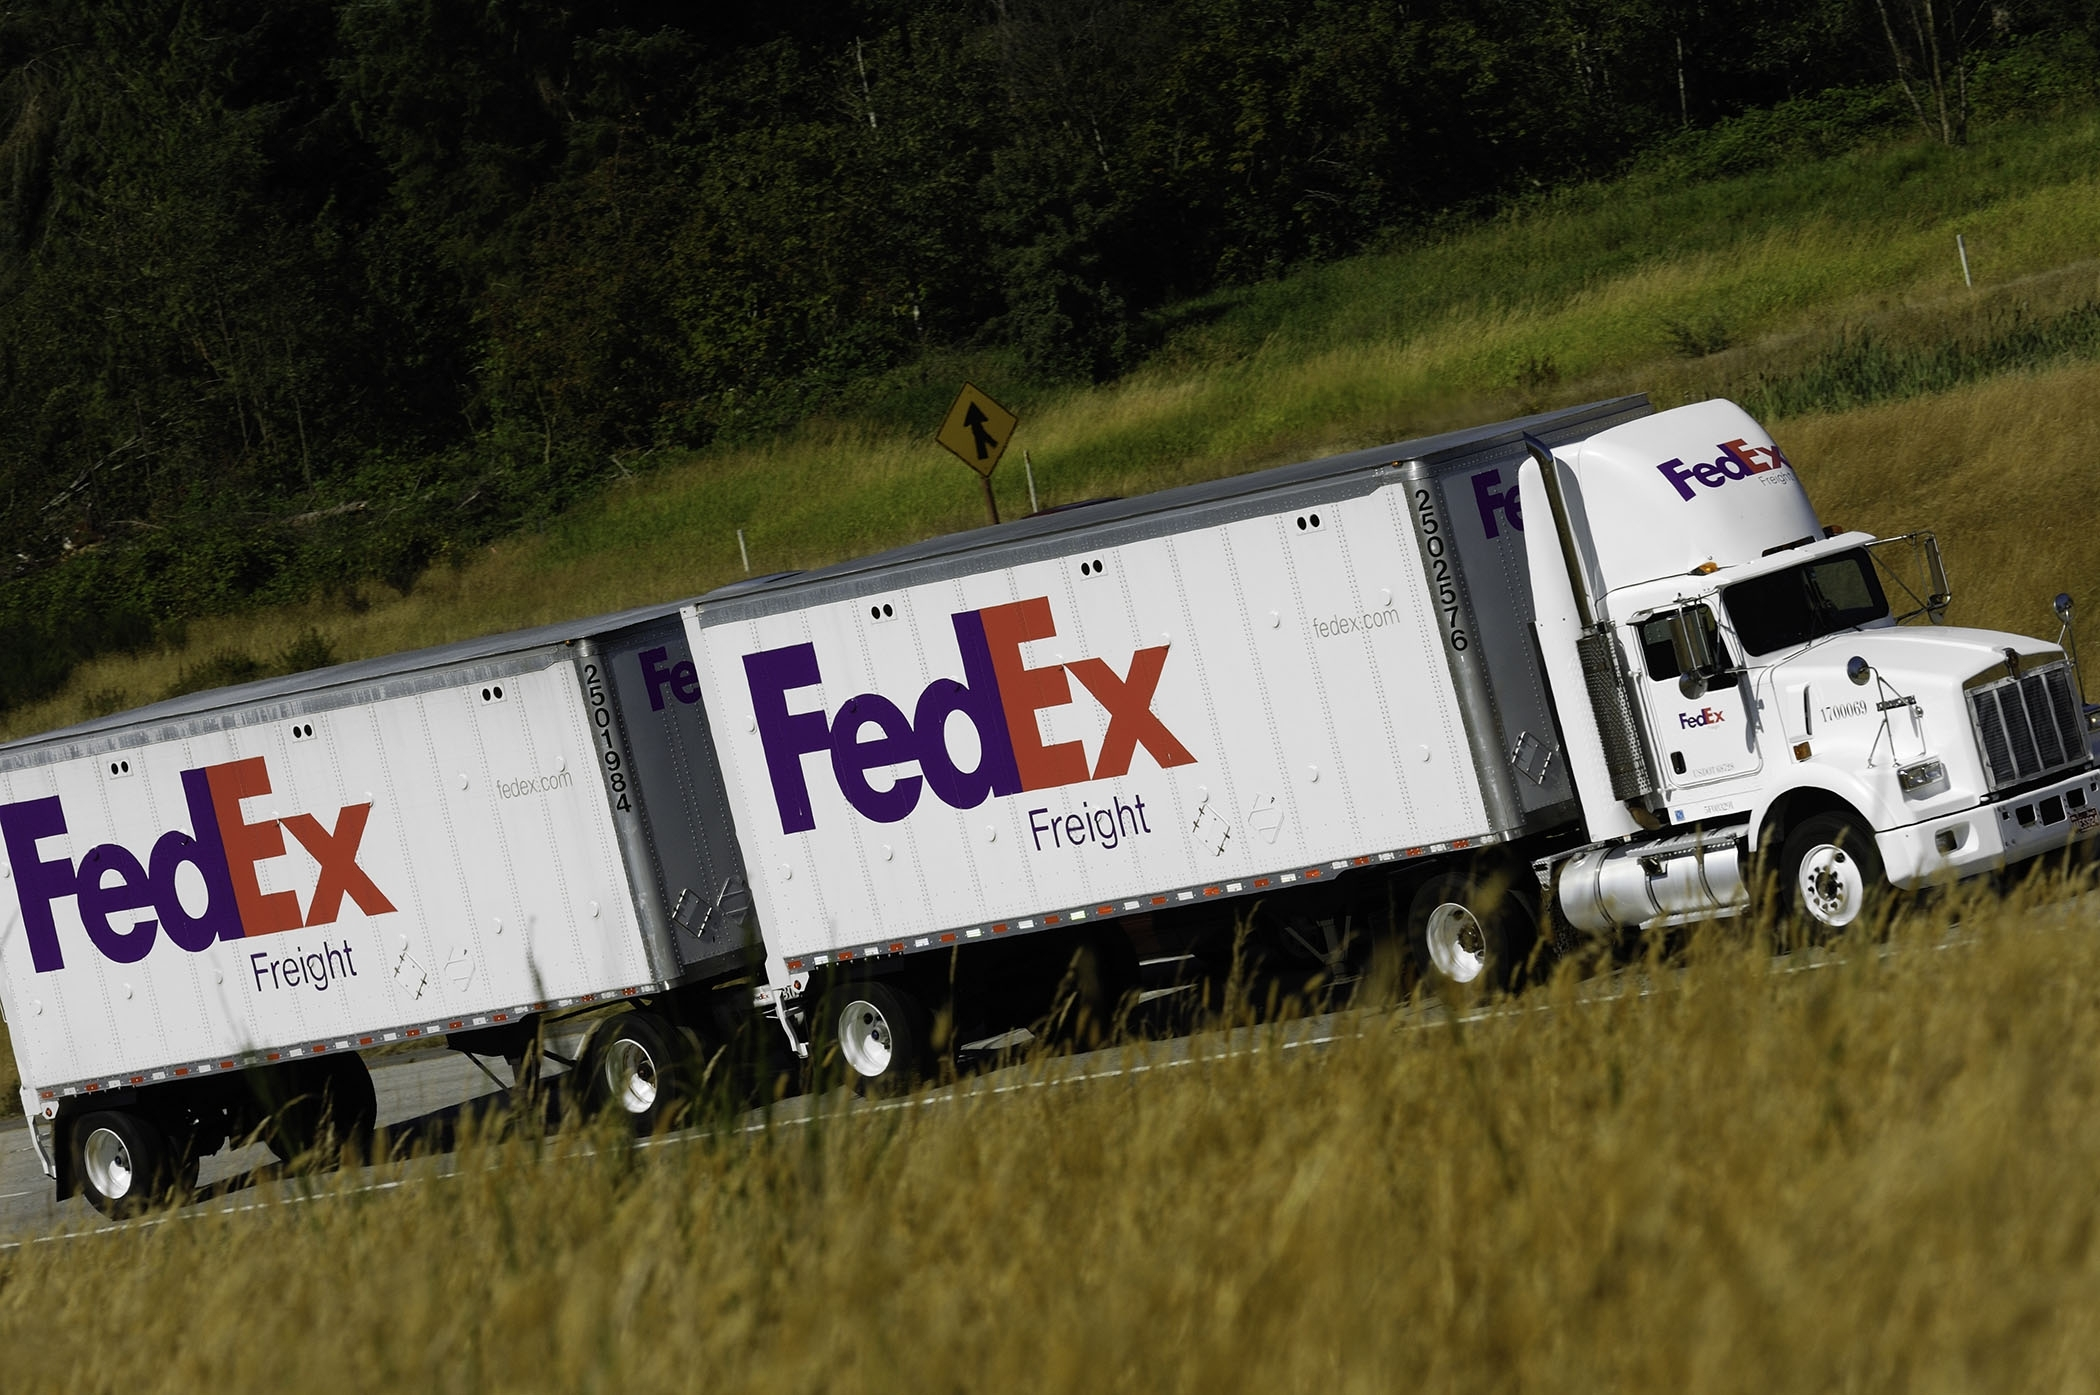 Teamsters Get First Win in Attempt to Organize FedEx Freight Drivers